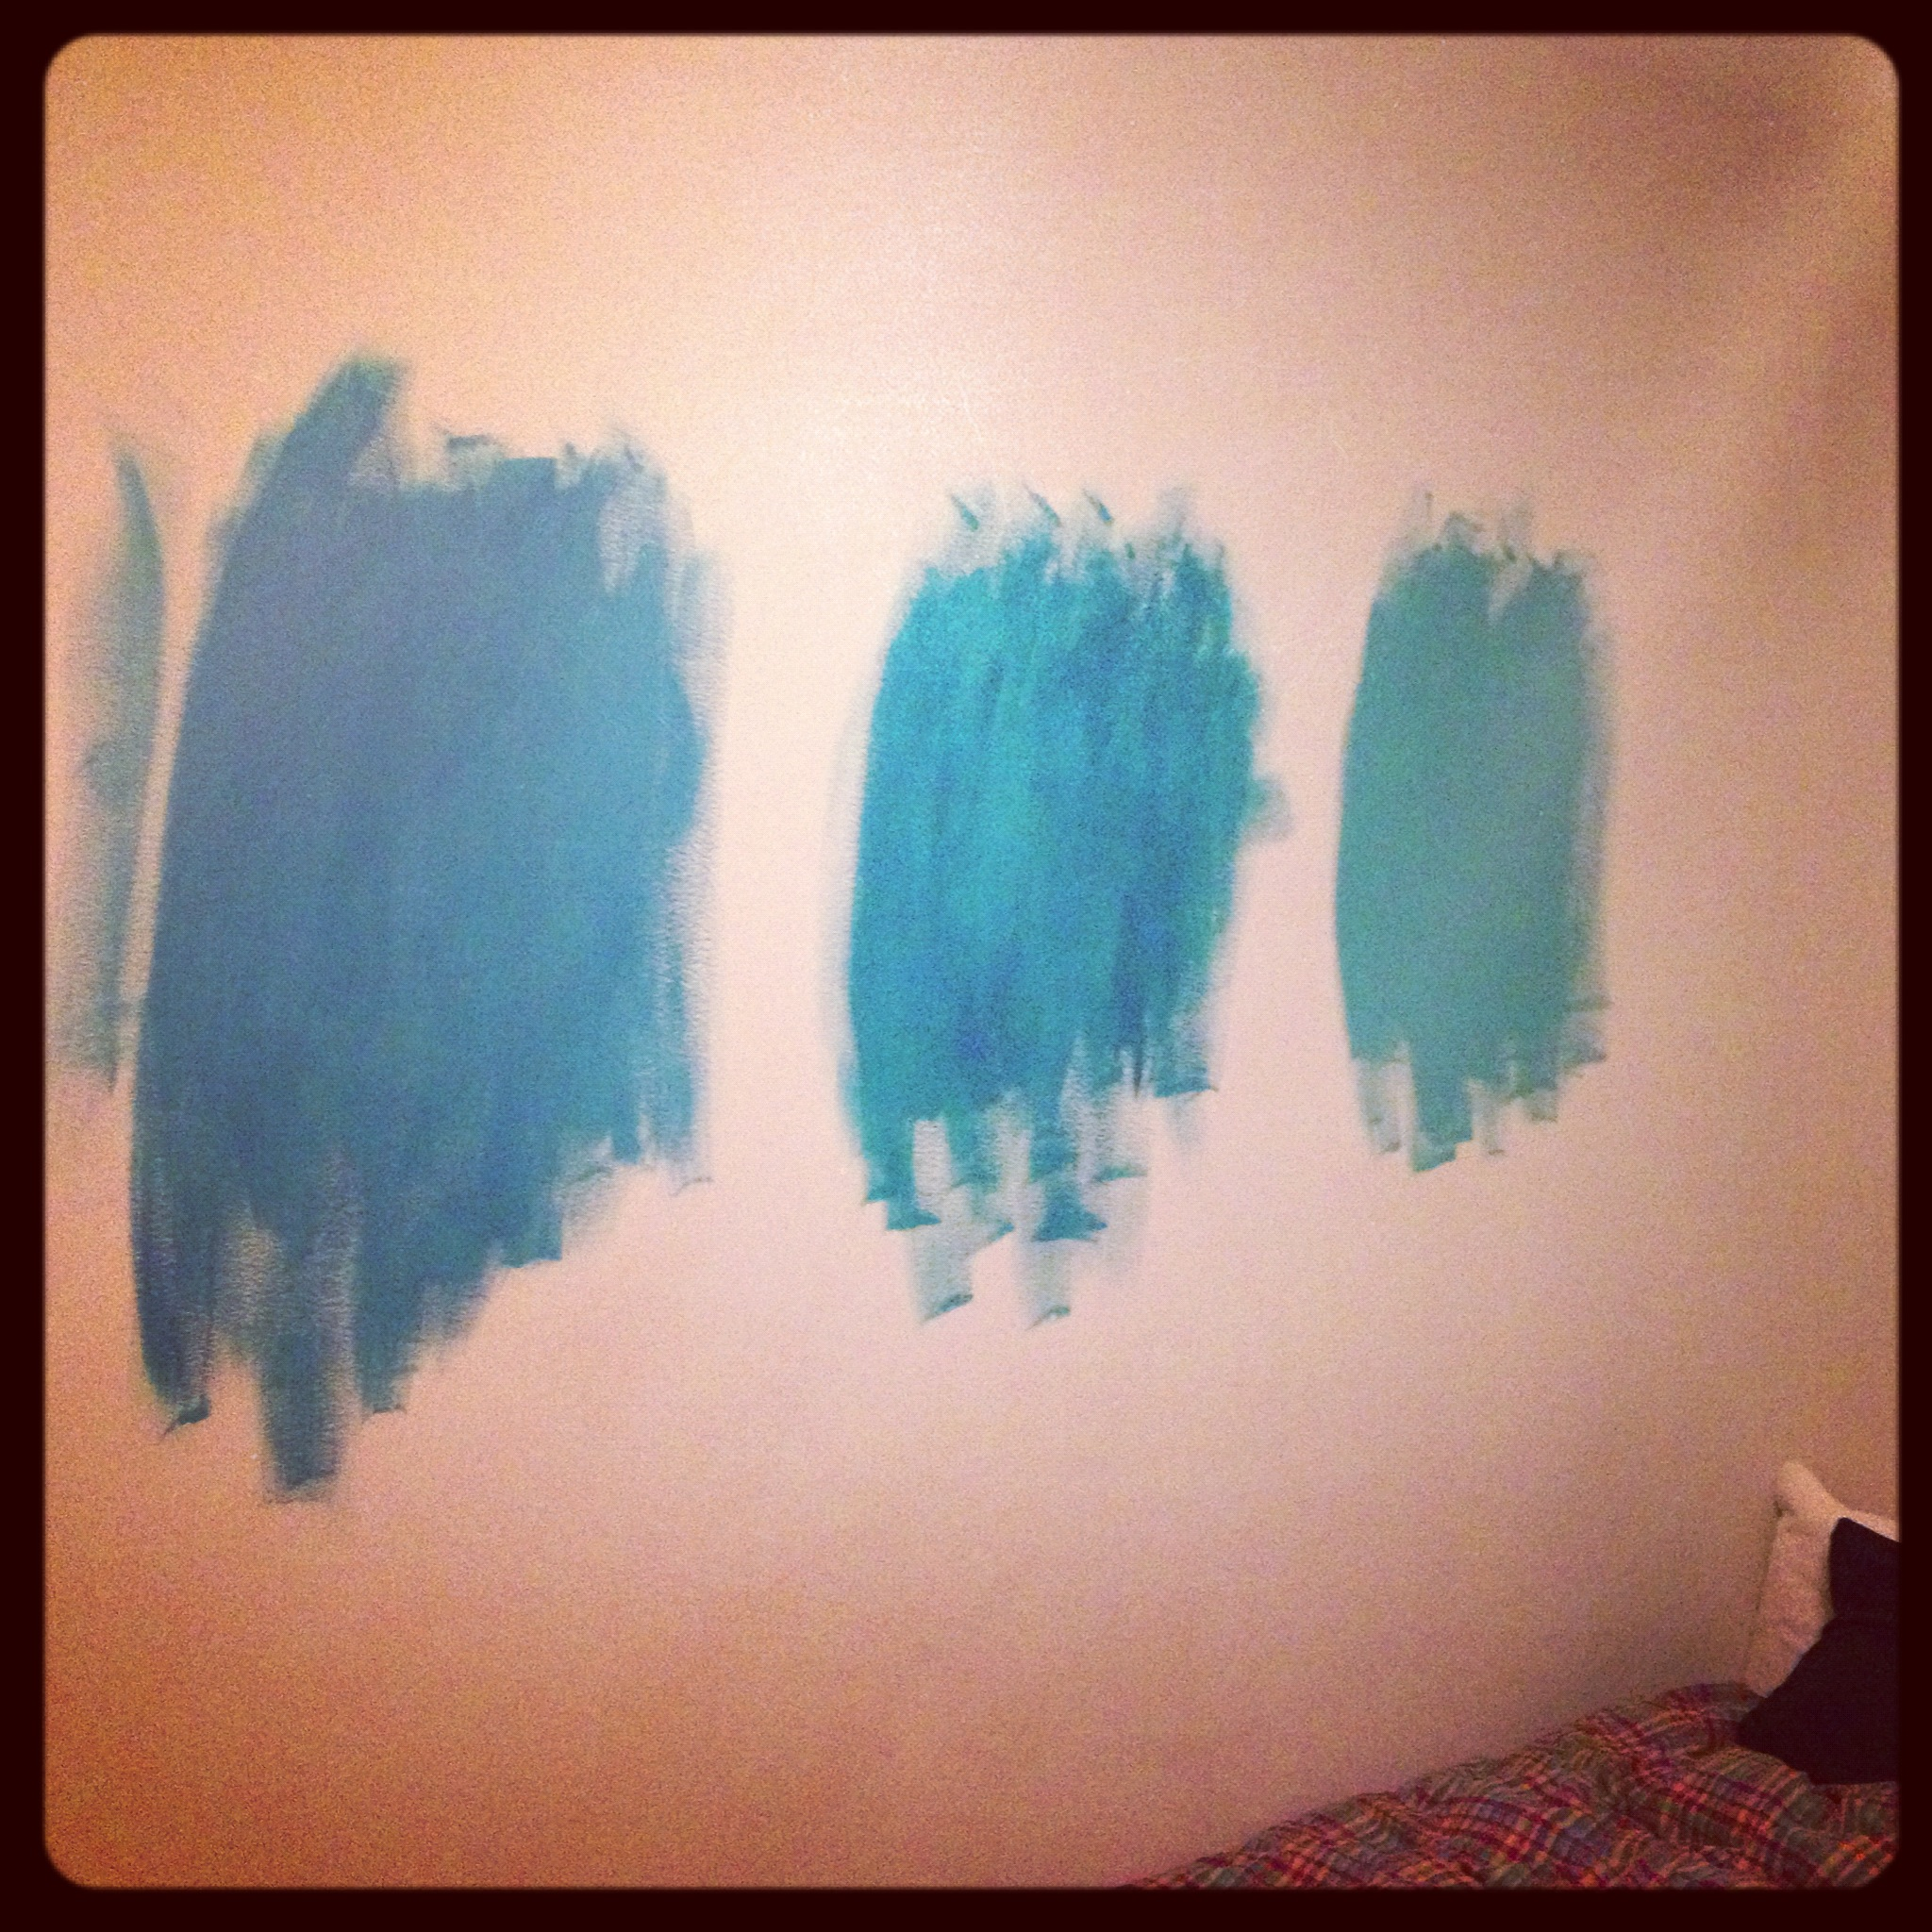 Teal Paint Samples - charleston crafted